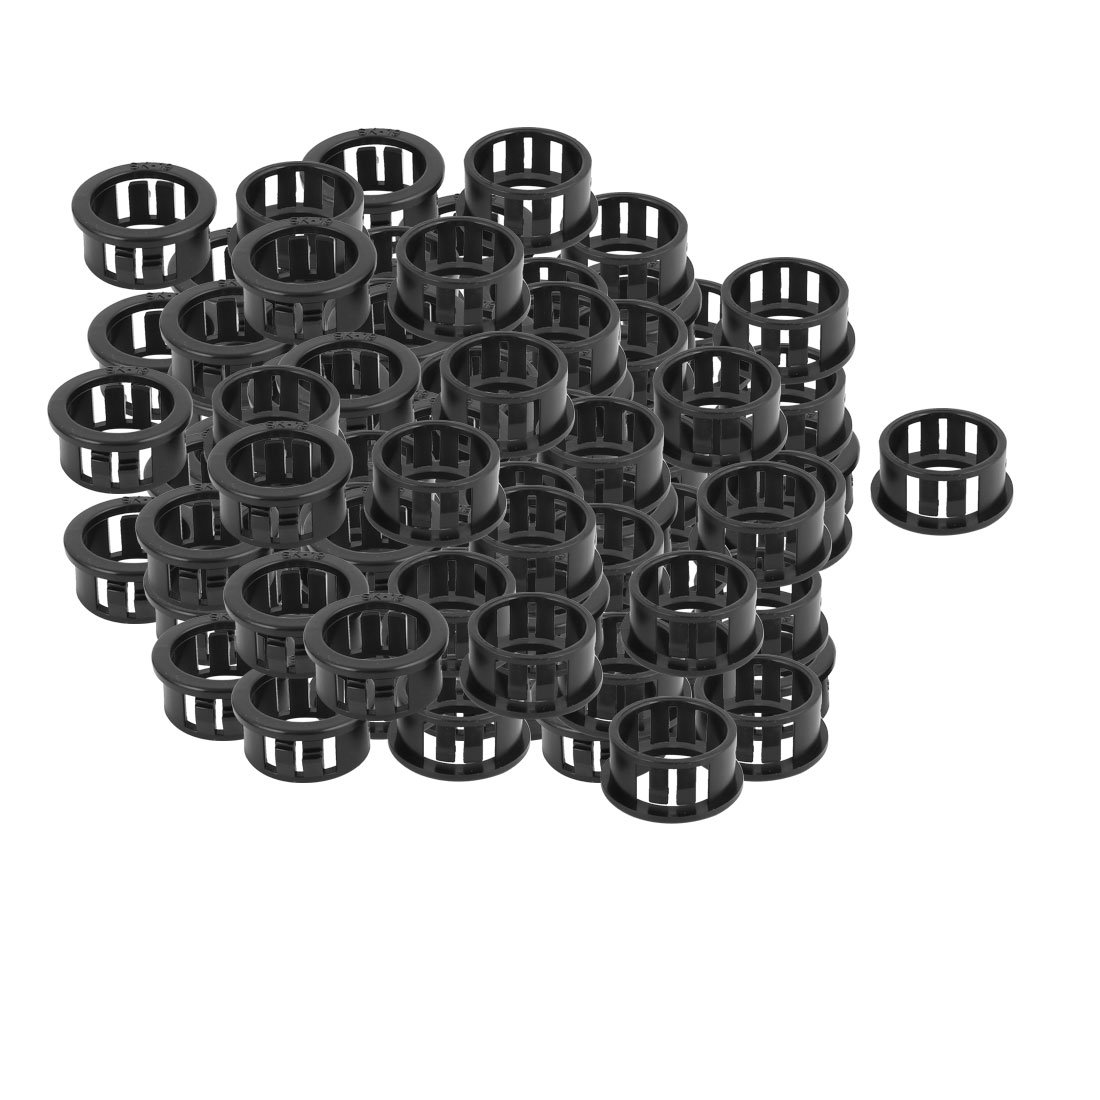 100 Pcs 19mm x 16mm Round Cable Harness Protective Snap Bushing SK-19 Black